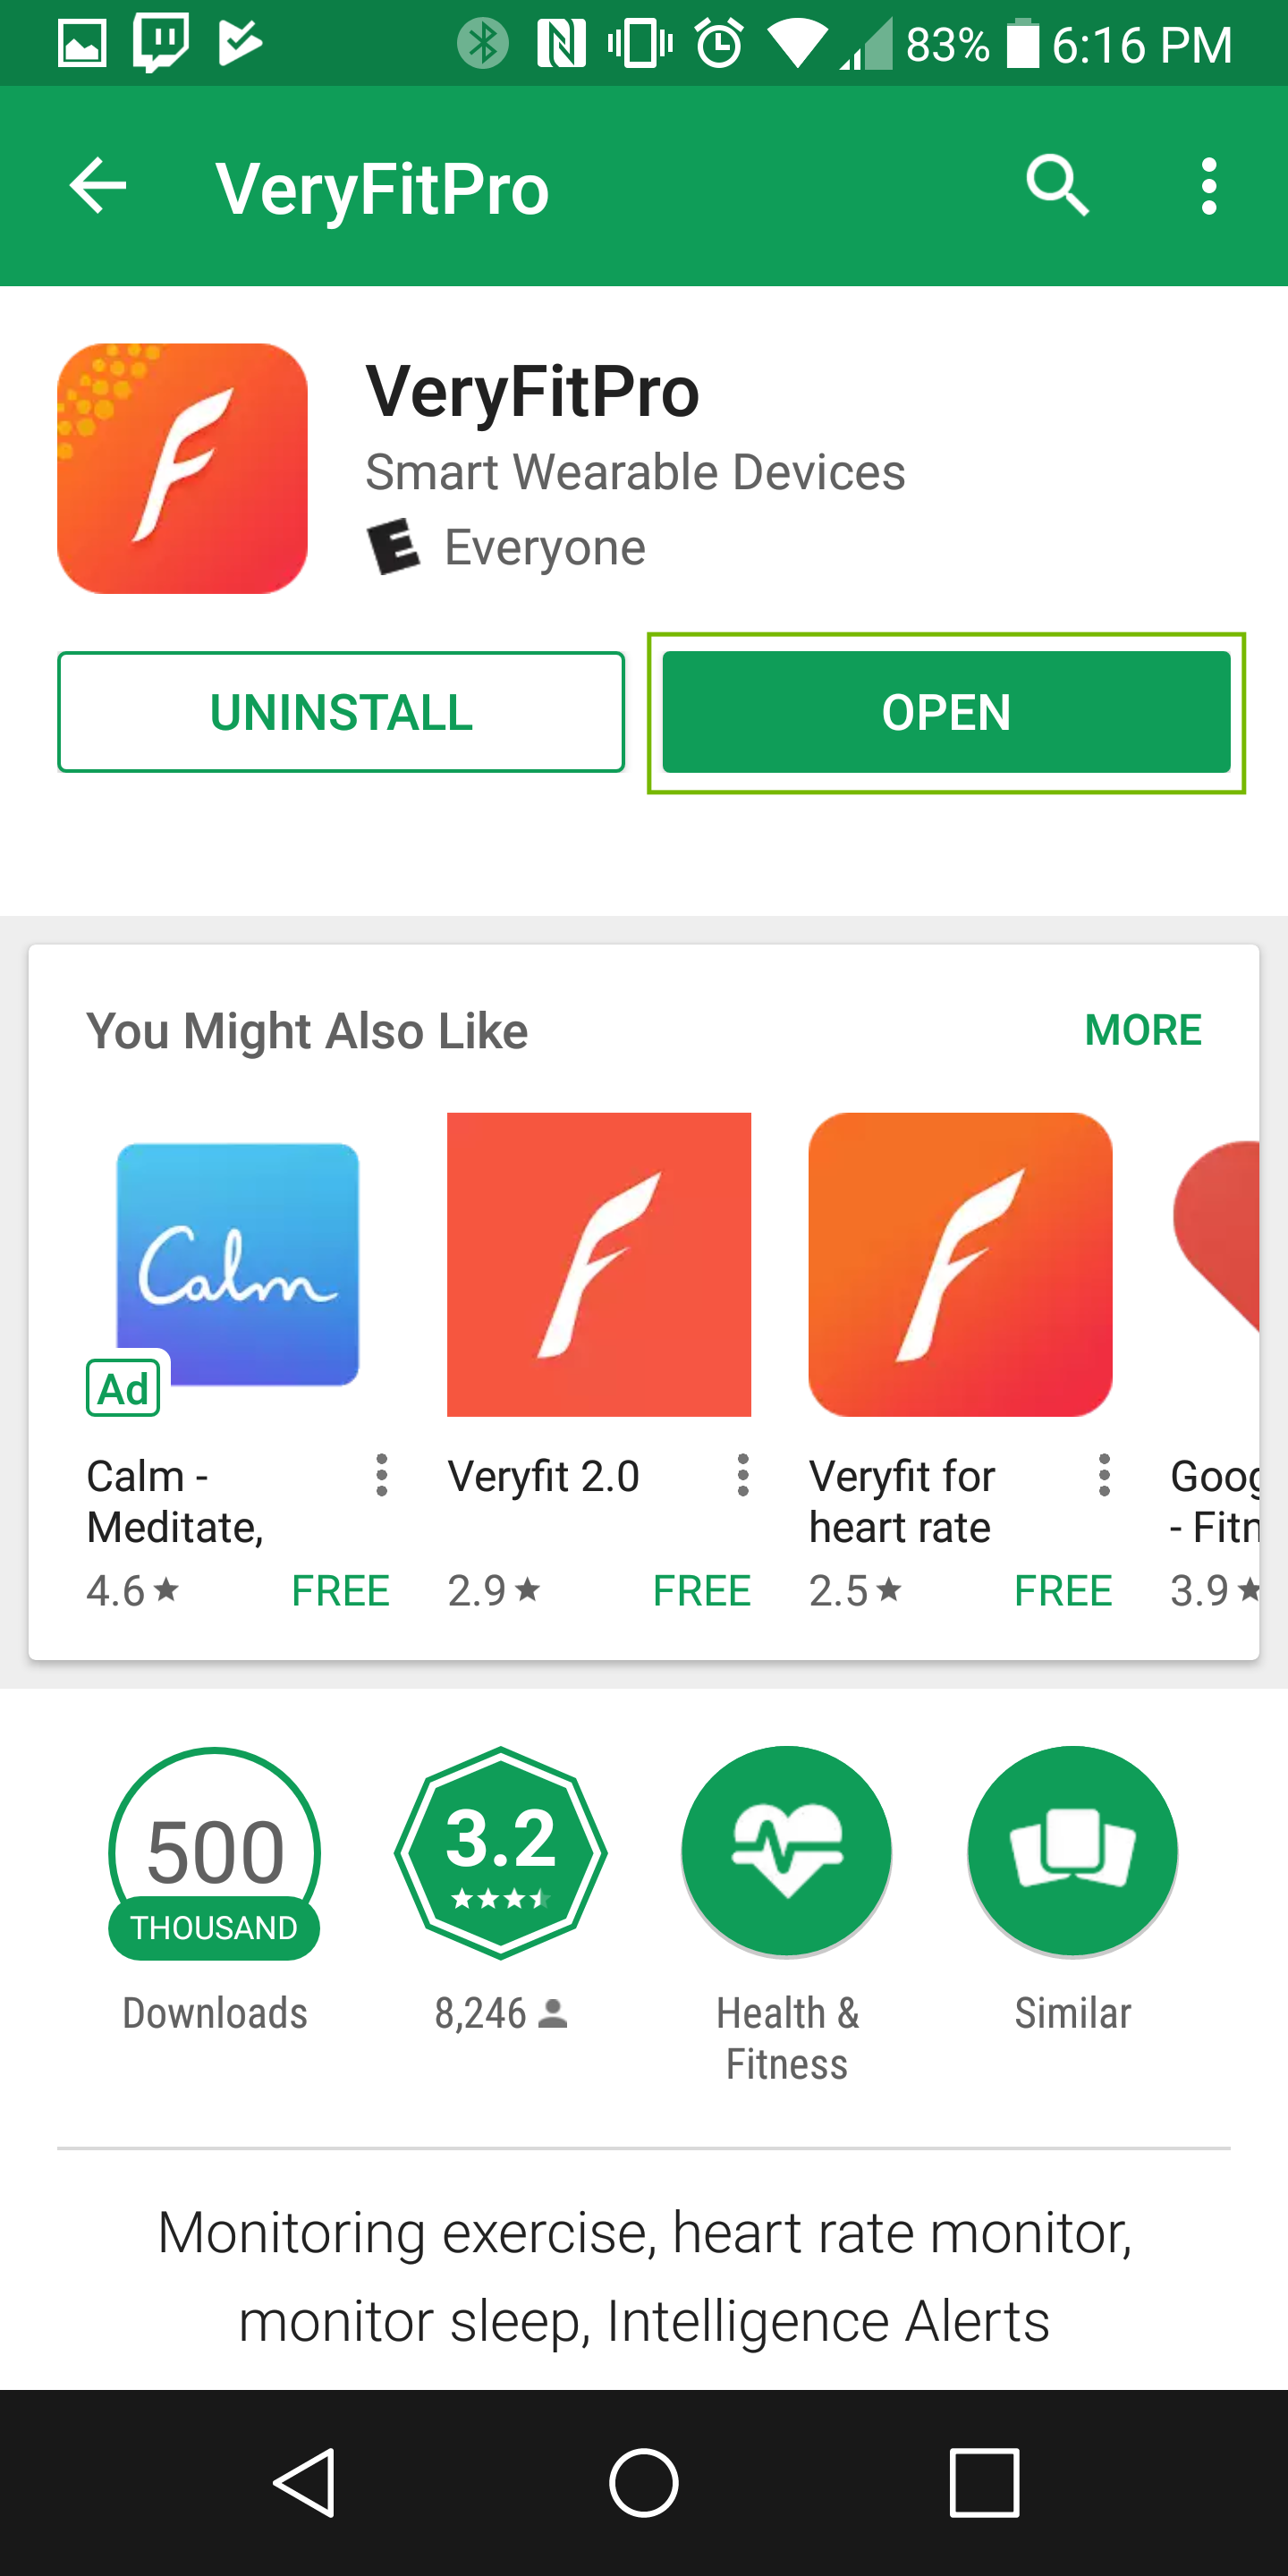 Veryfitpro app page with open highlighted